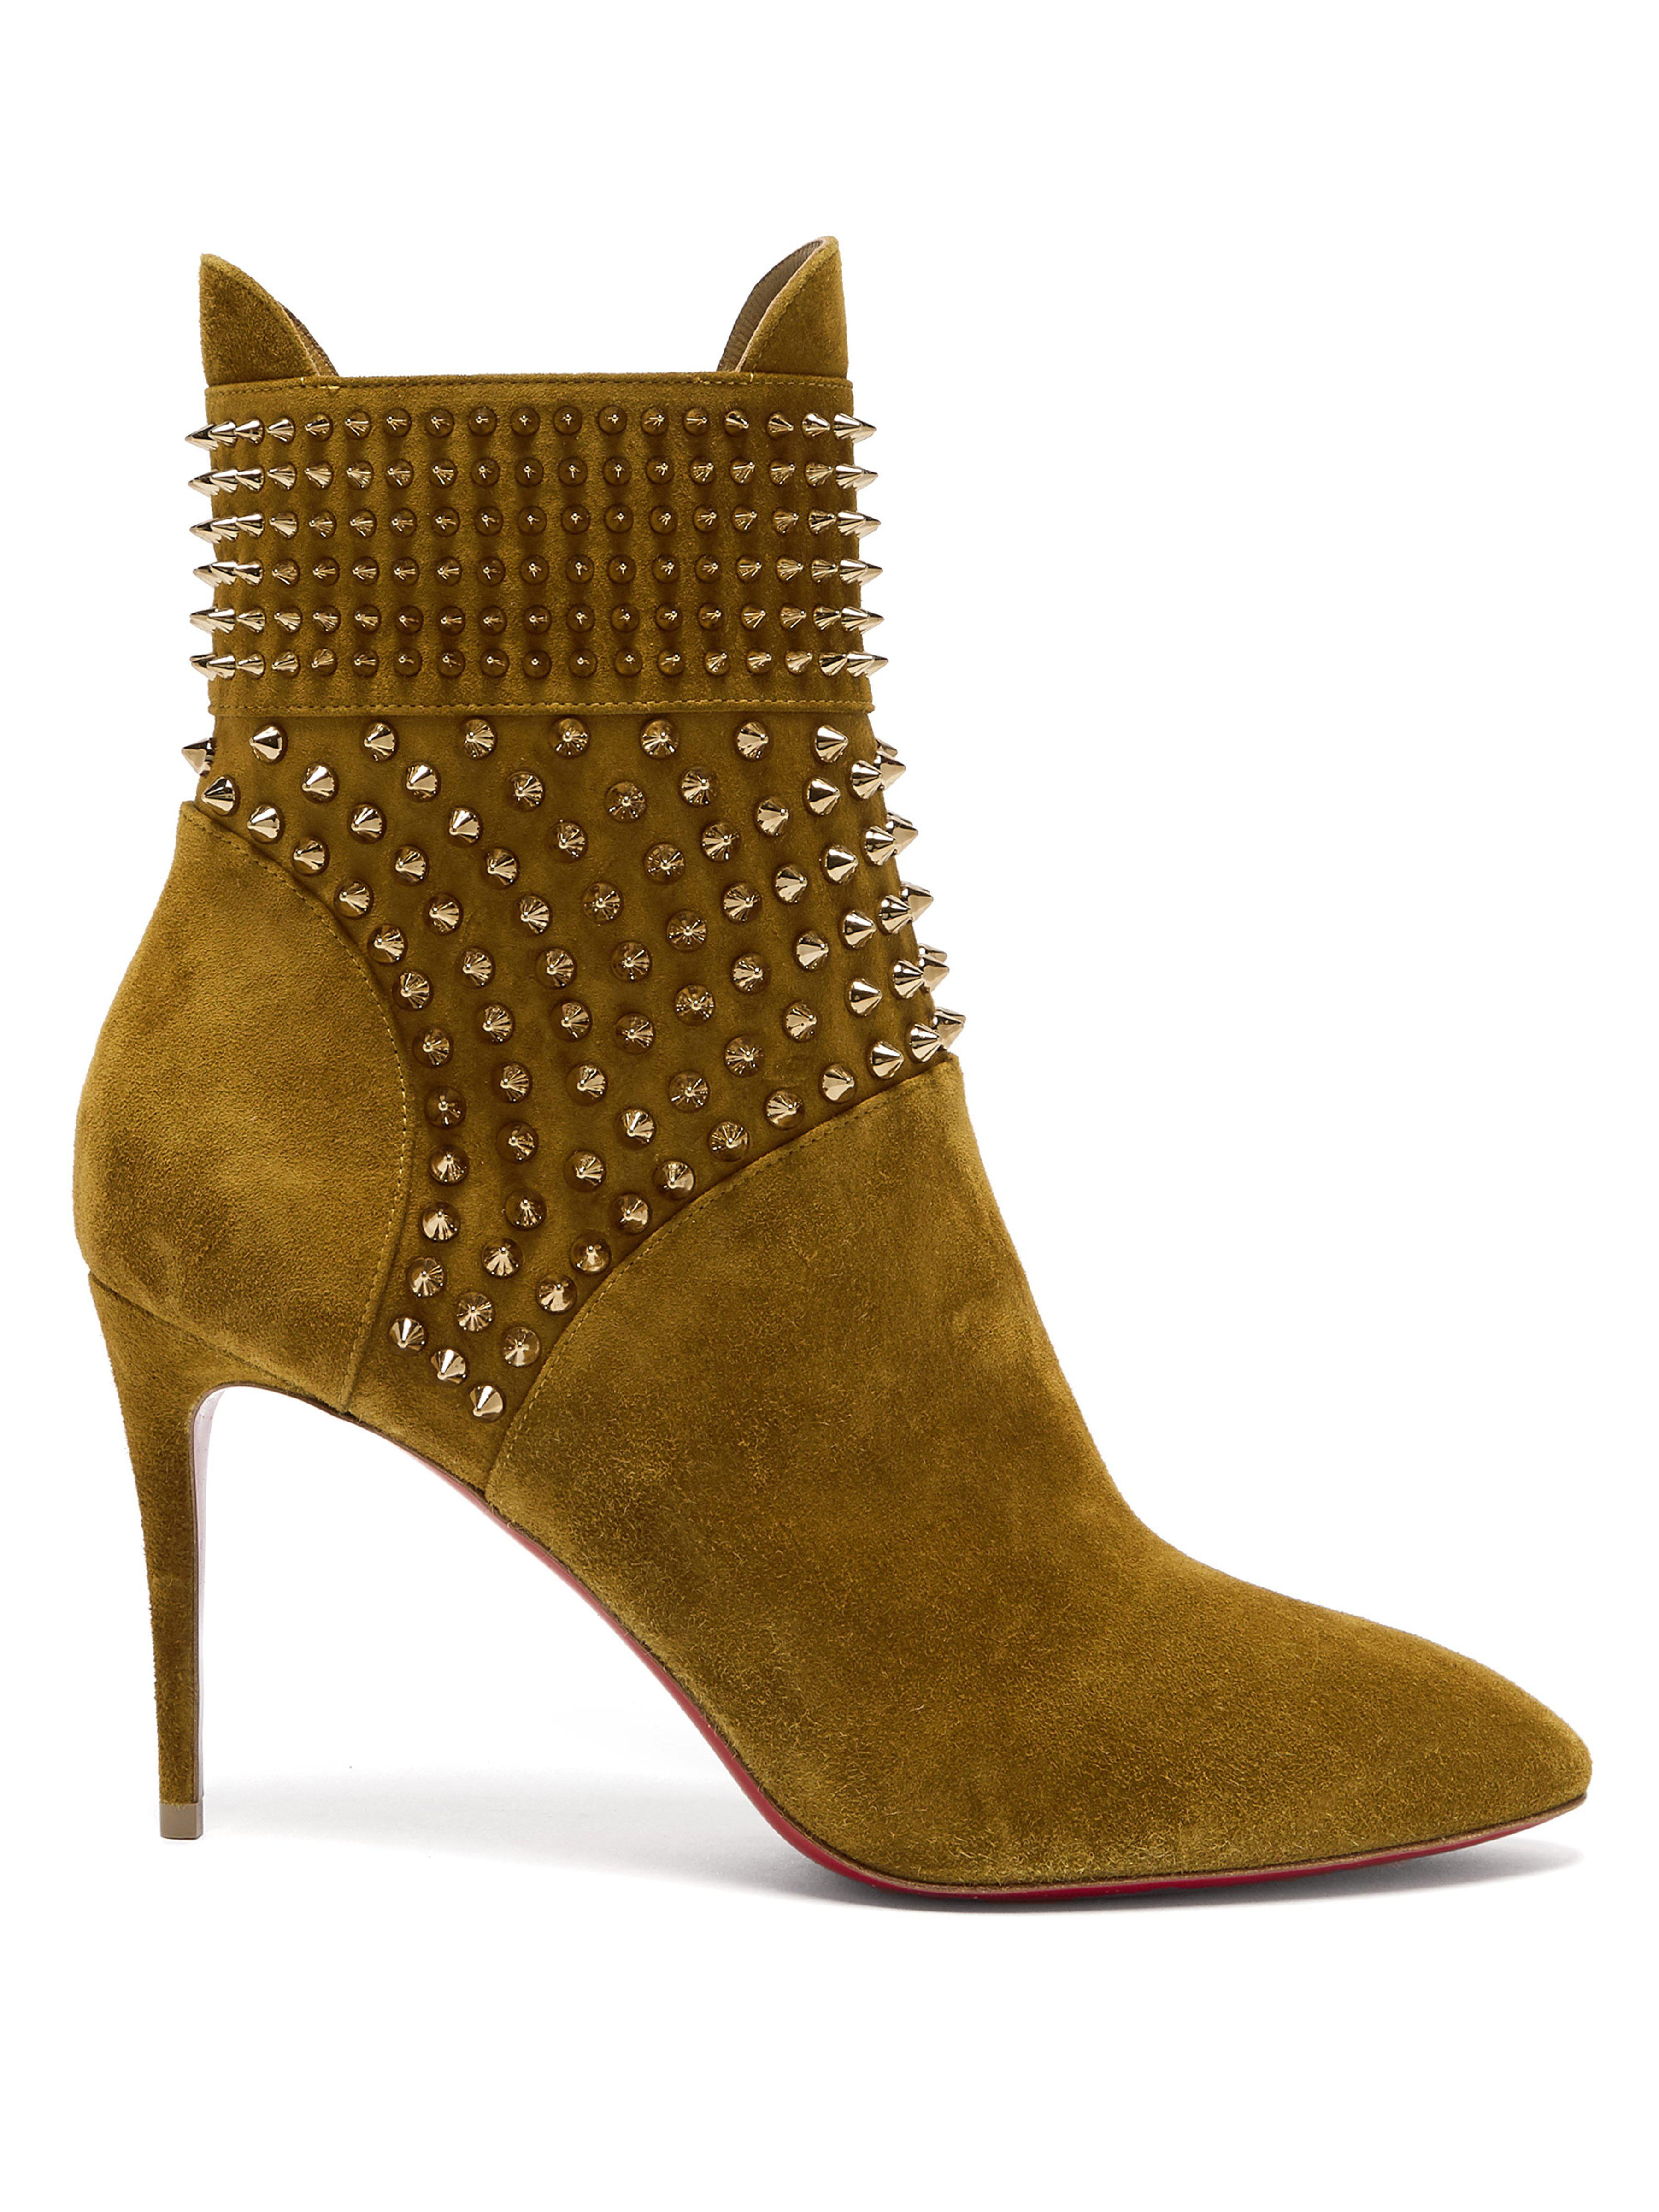 2df54ebcb6e0 Christian Louboutin Hongroise 85 Studded Suede Boots in Natural - Lyst